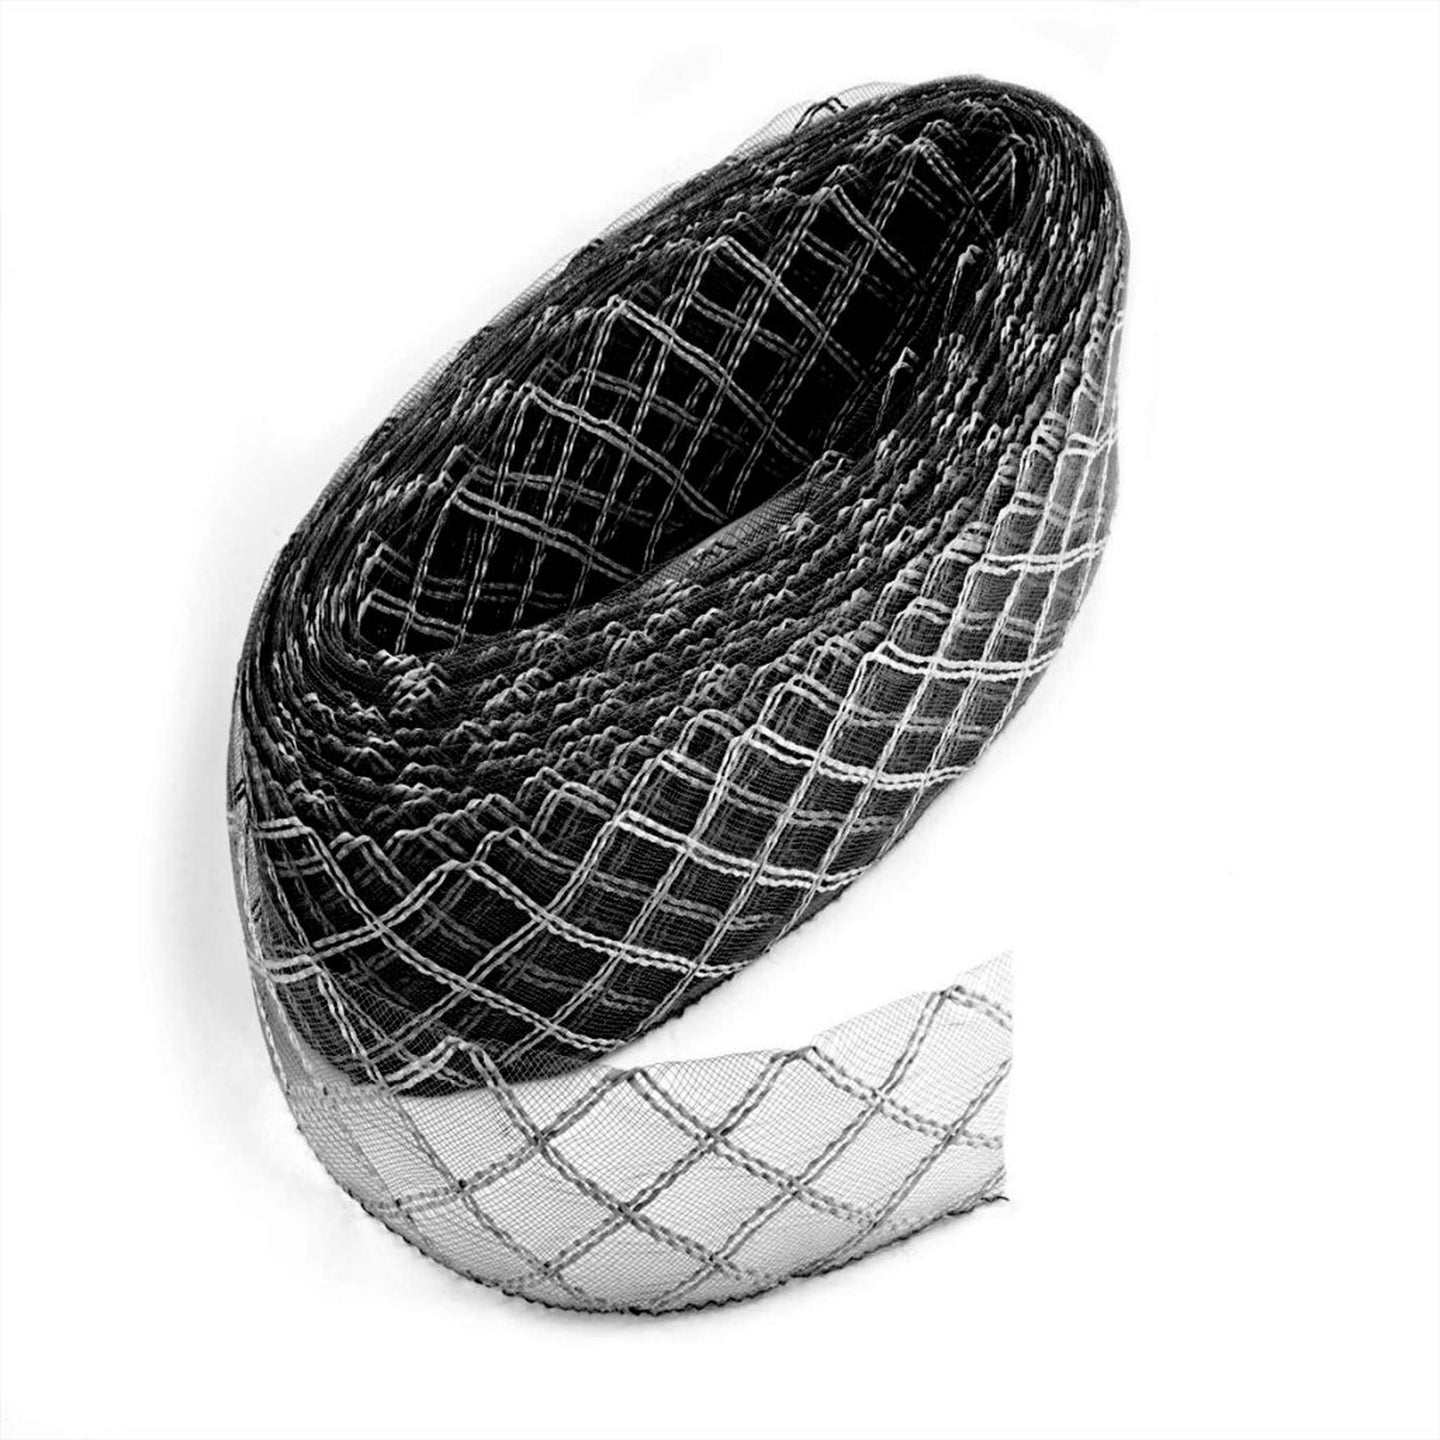 Crinoline braid fabric rafia wedding millinery fascinator hat birdcage net BR019